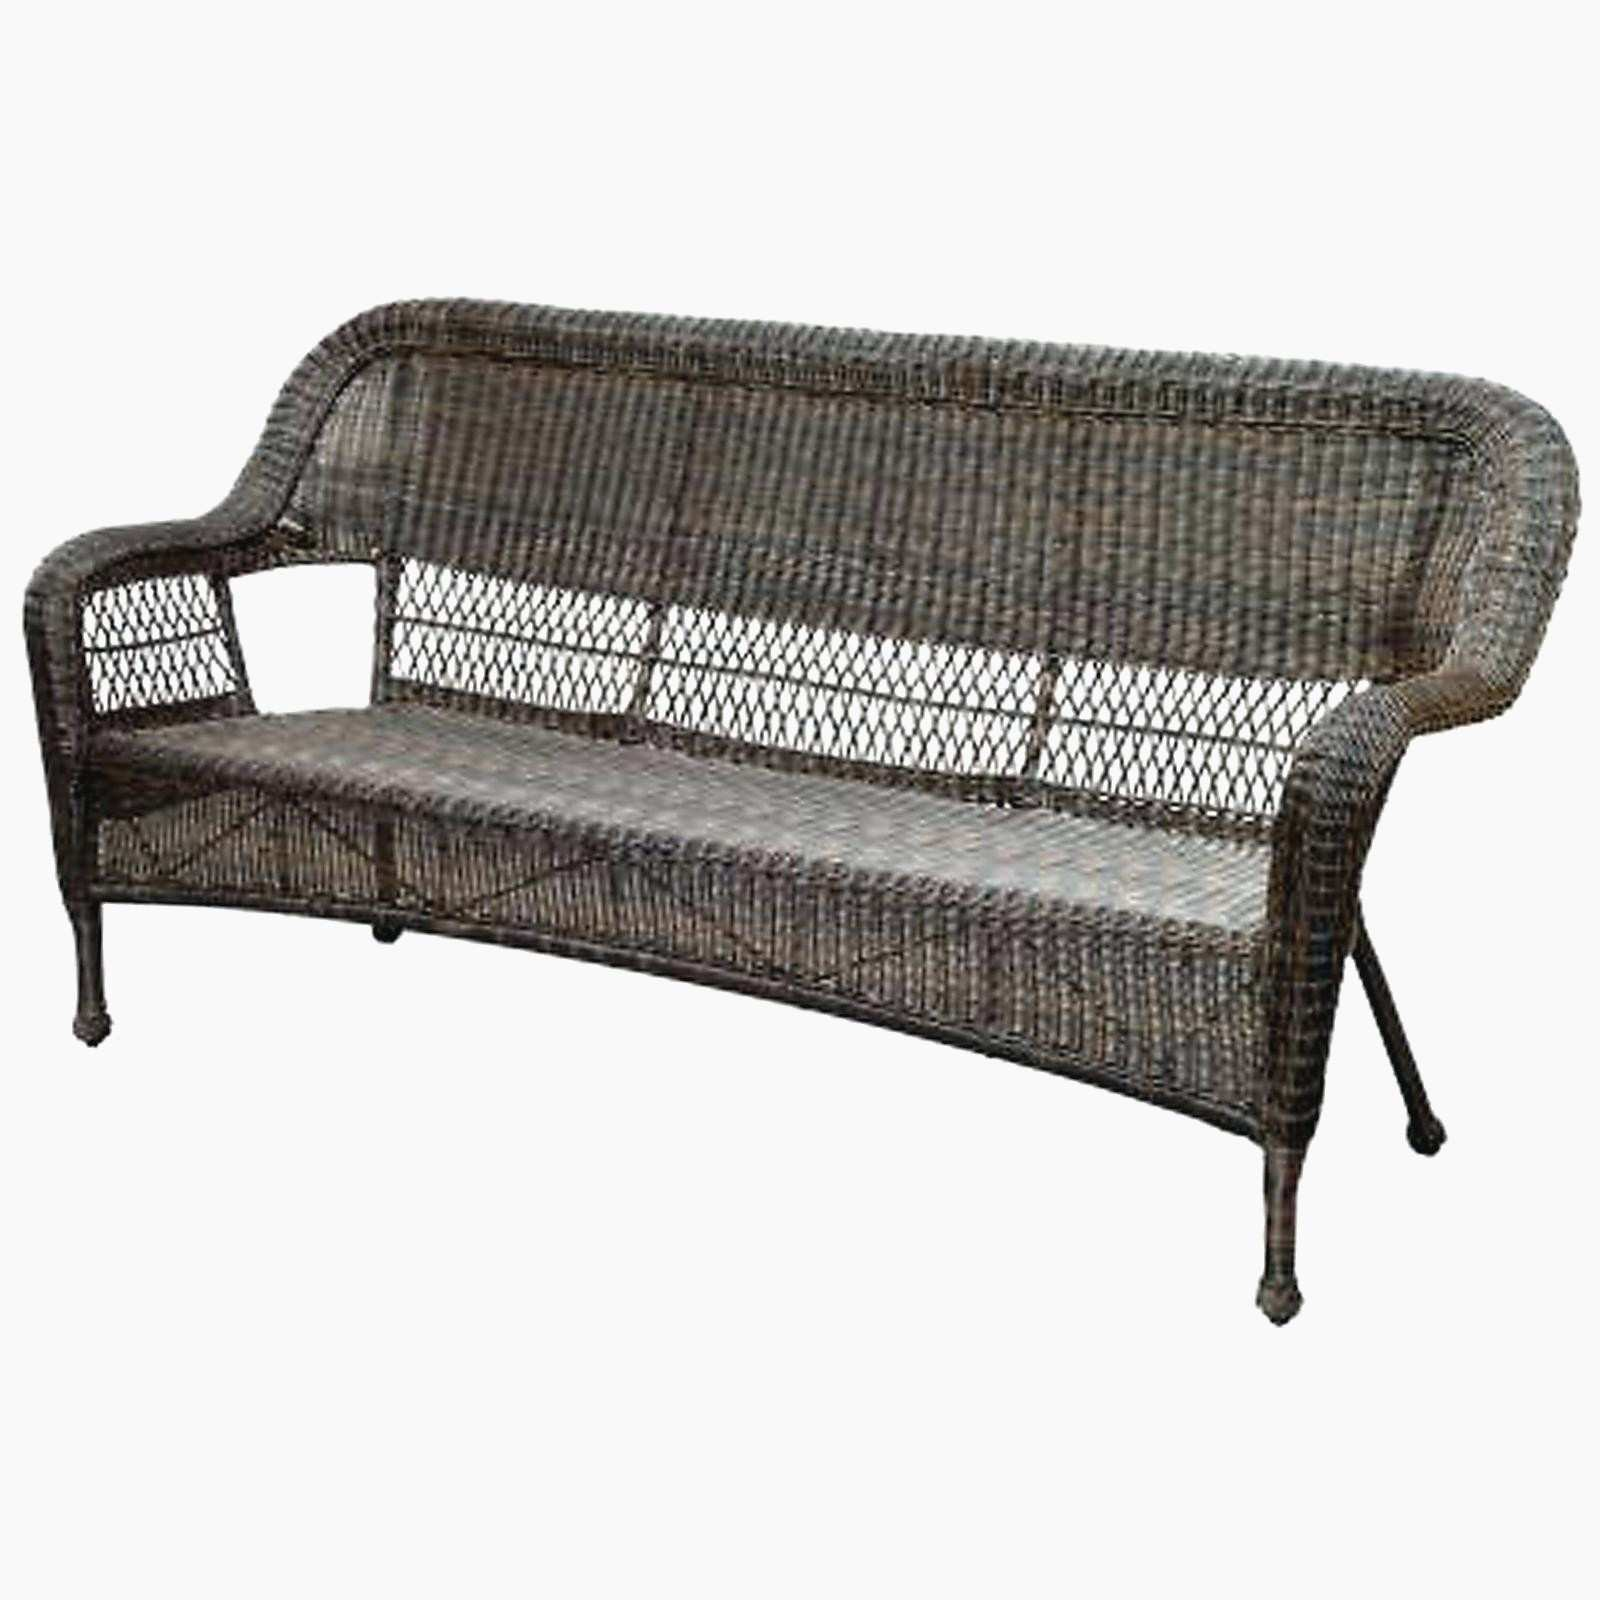 Daybeds Daybeds For Sale Round Daybed Brisbane Ebay Big Lots